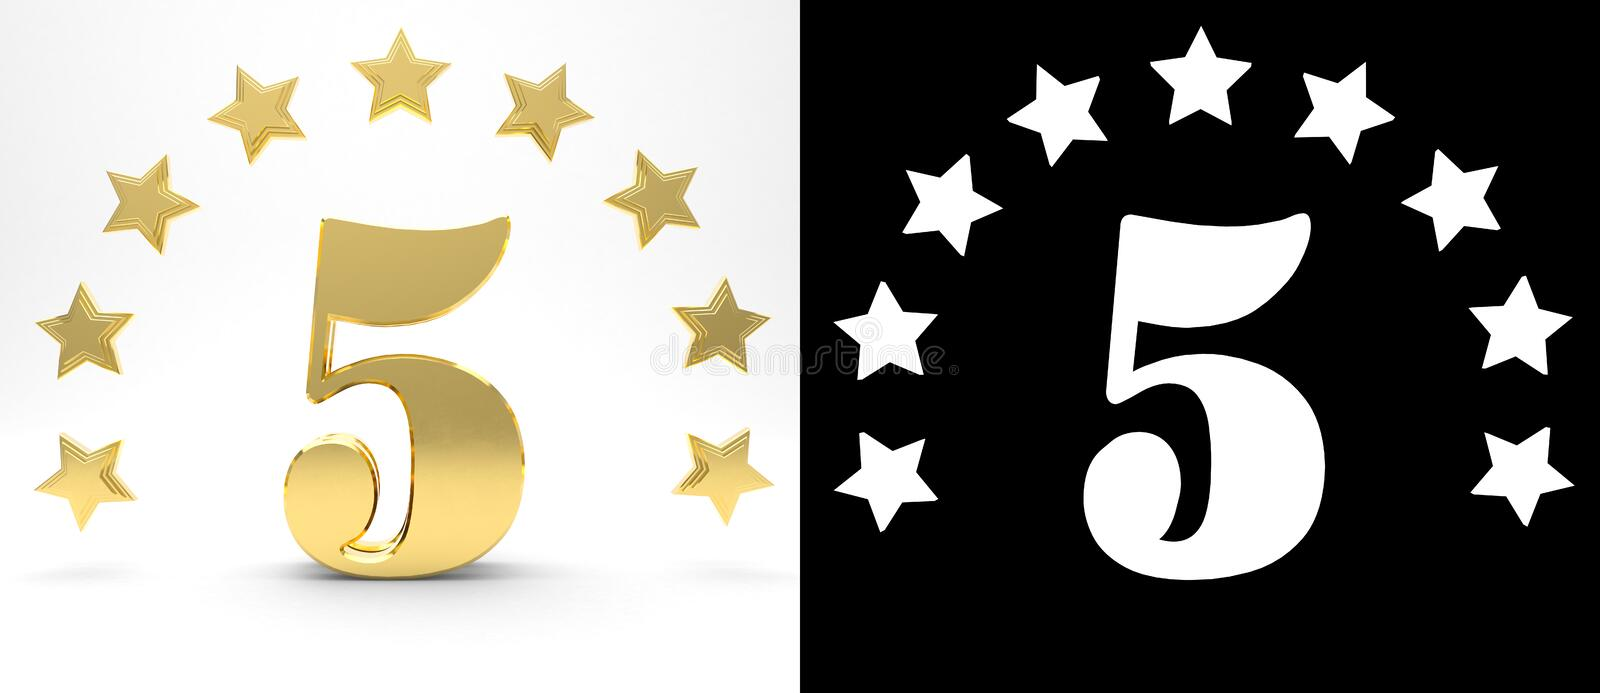 Golden number five on white background with drop shadow and alpha channel , decorated with a circle of stars. 3D illustration.  royalty free illustration